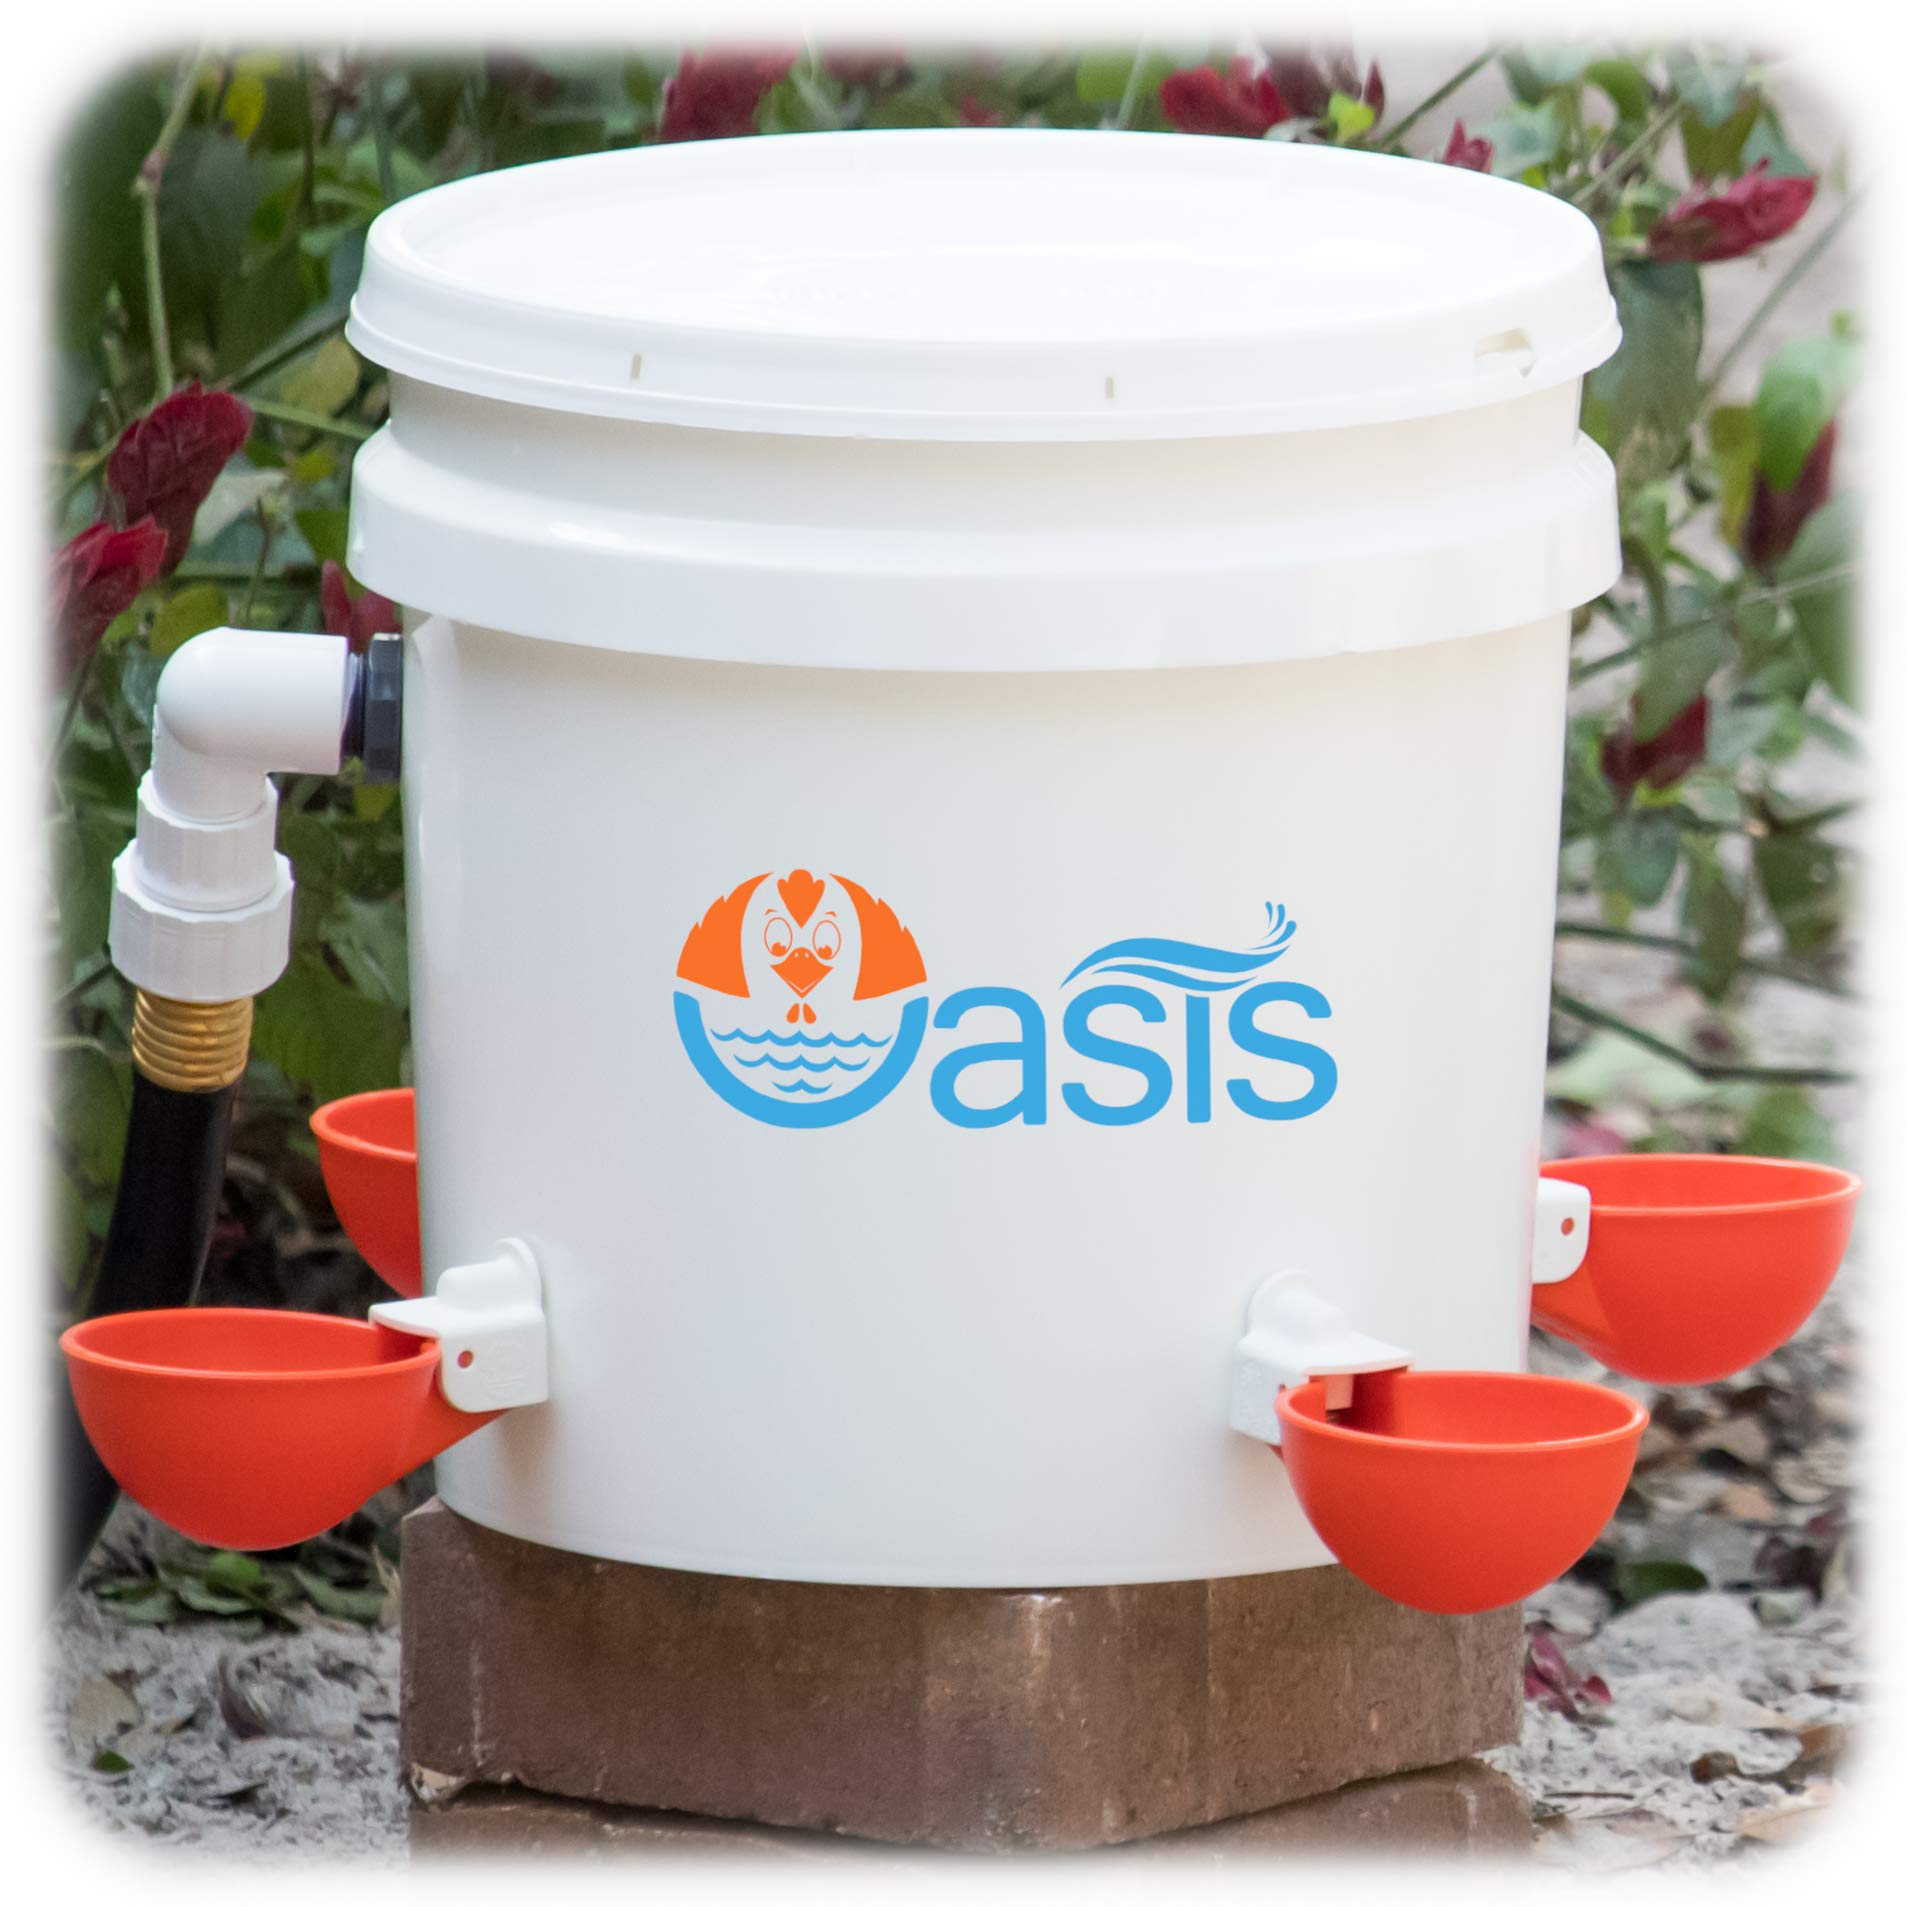 Oasis Chicken Waterer Kit (Bucket NOT Included) | Complete with Oasis Watering Cups, Bucket Float Valve and Drill Bits | 4 Cup Kit (Orange) by Backyard Flock